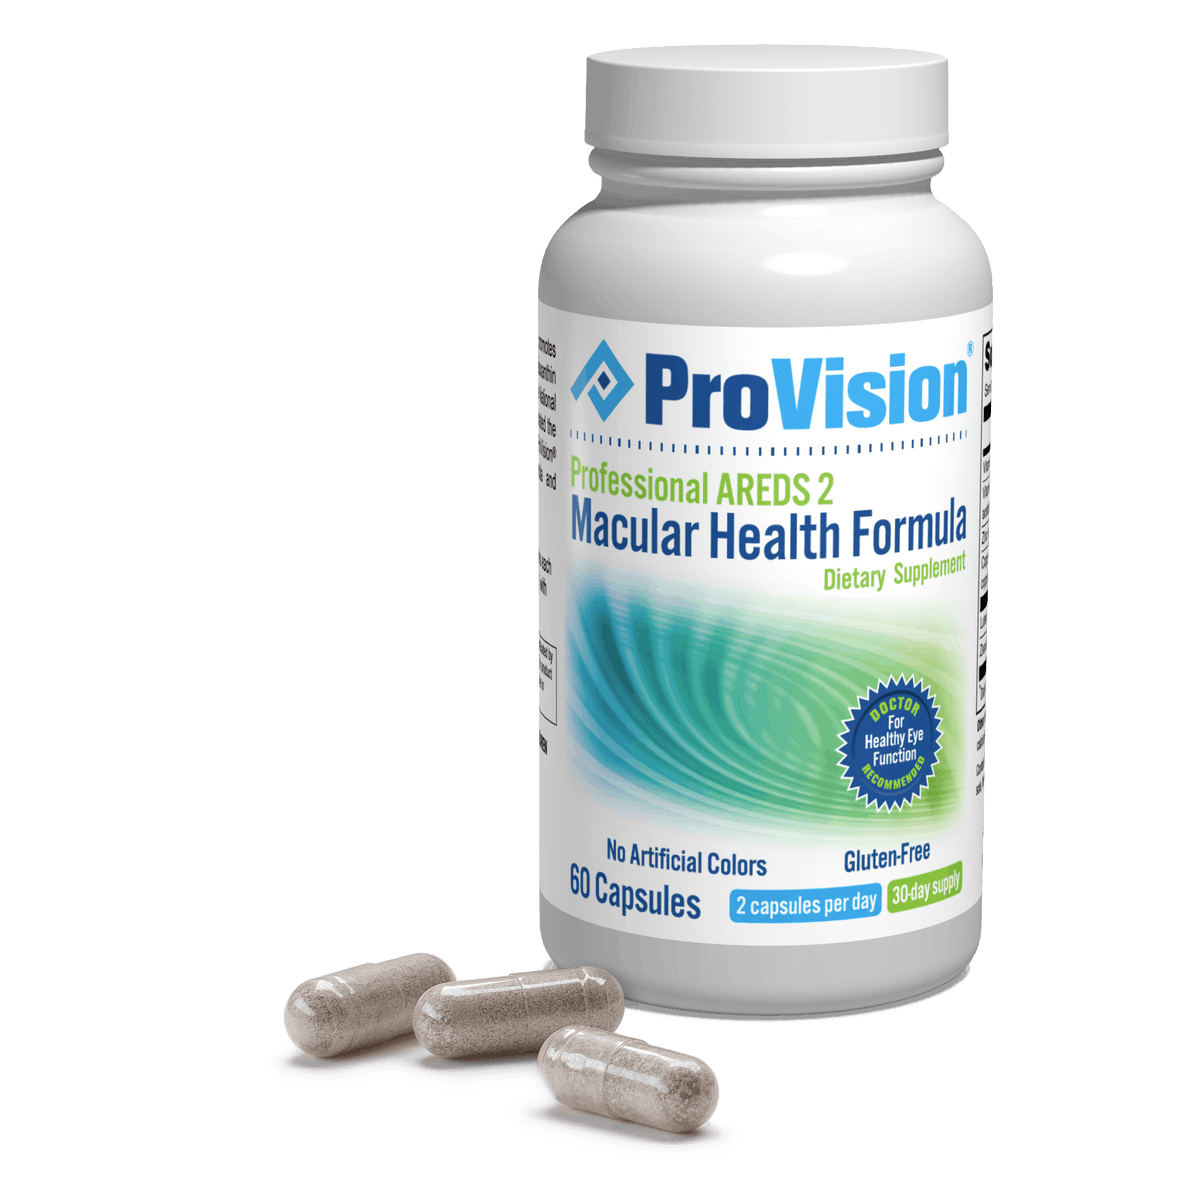 INFORMATION ONLY - Provision Professional AREDS 2 Macular Health Formula